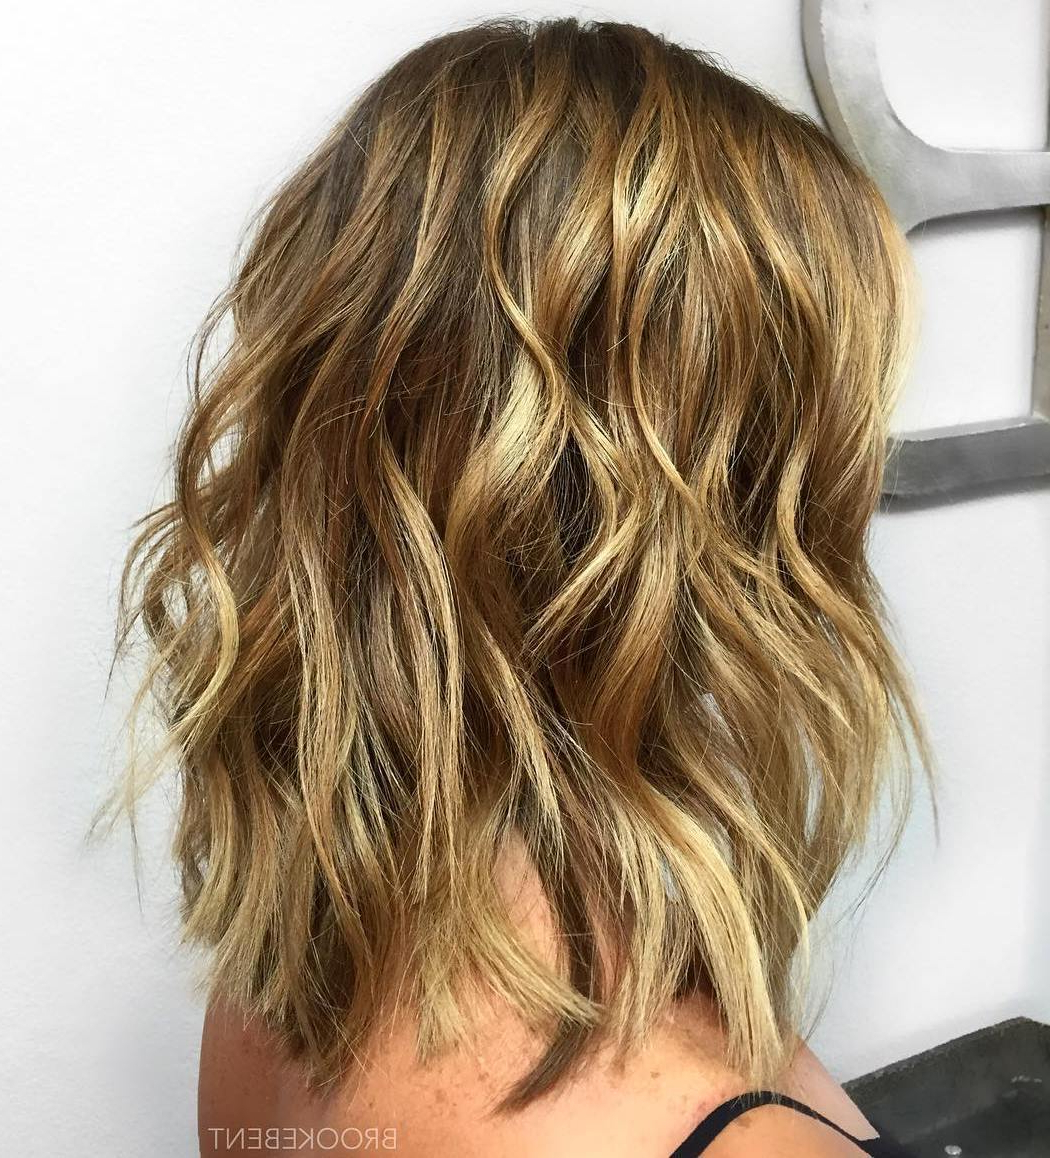 50 Fabulous Medium Length Layered Hairstyles – Hair Adviser In 2019 Lovely Golden Blonde Haircuts With Swoopy Layers (View 10 of 20)